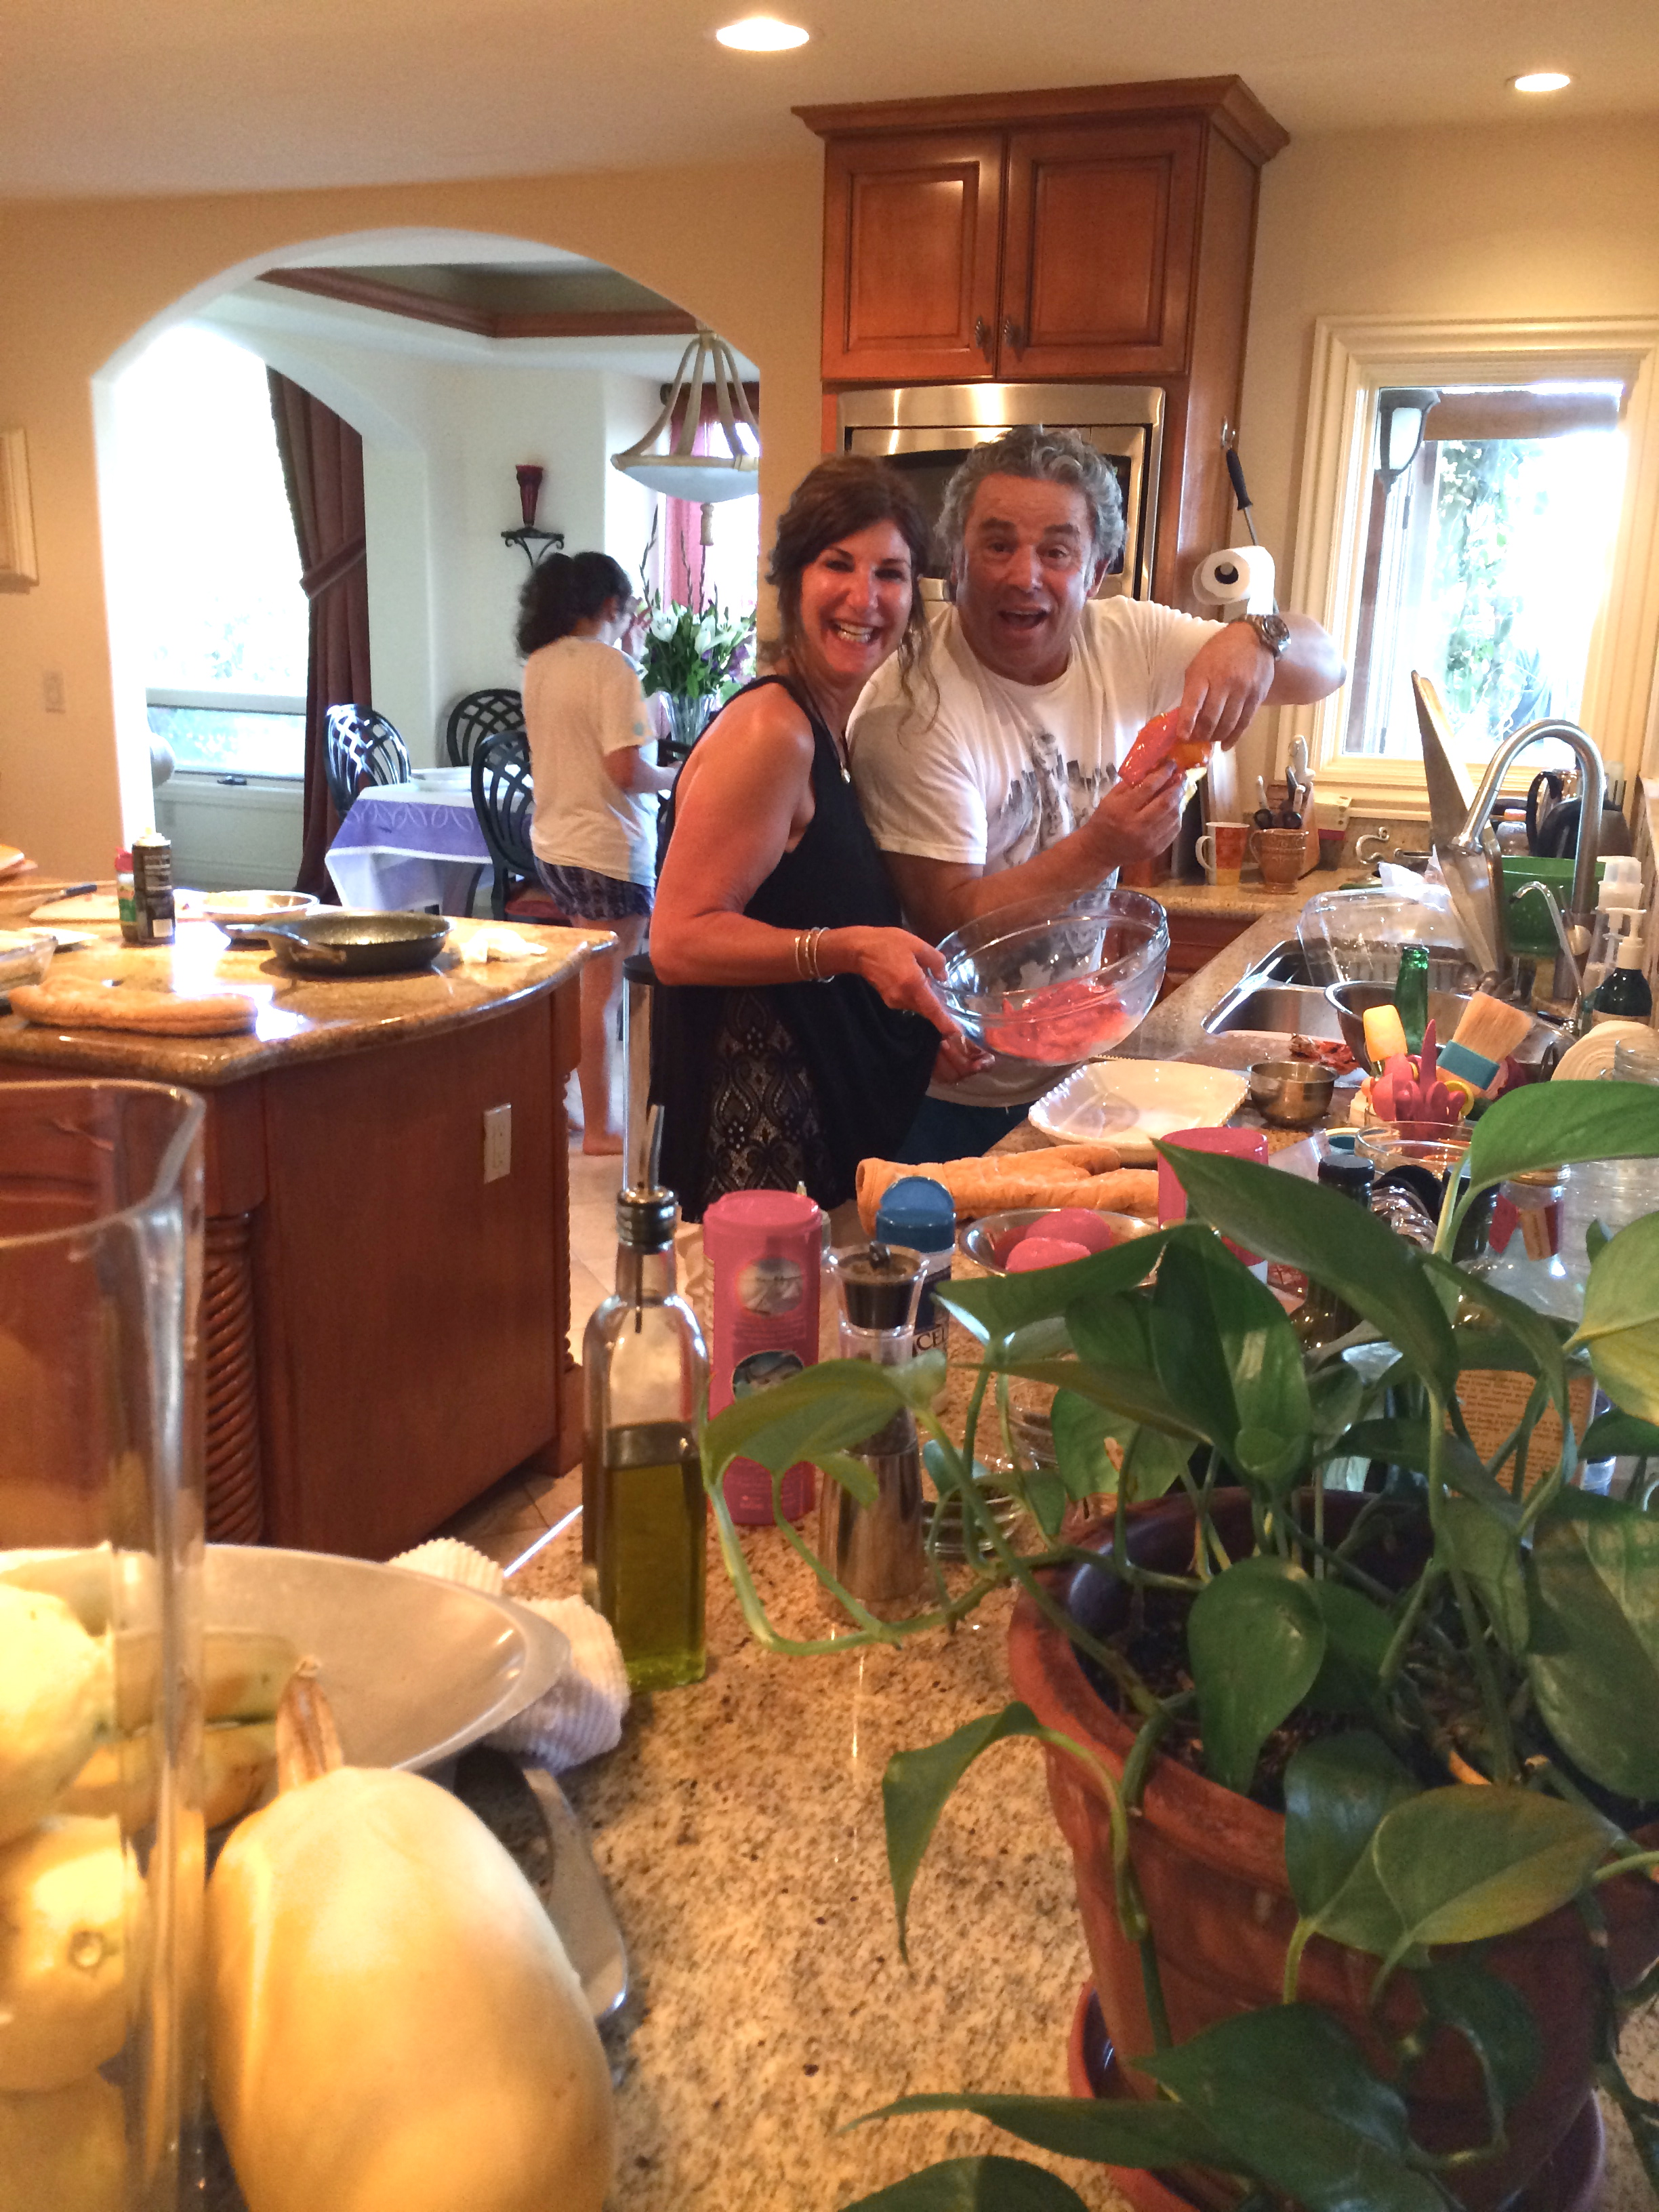 Chef Garden: Guest Chef Shares Garden-To-Table Cooking With Lajollacooks4u